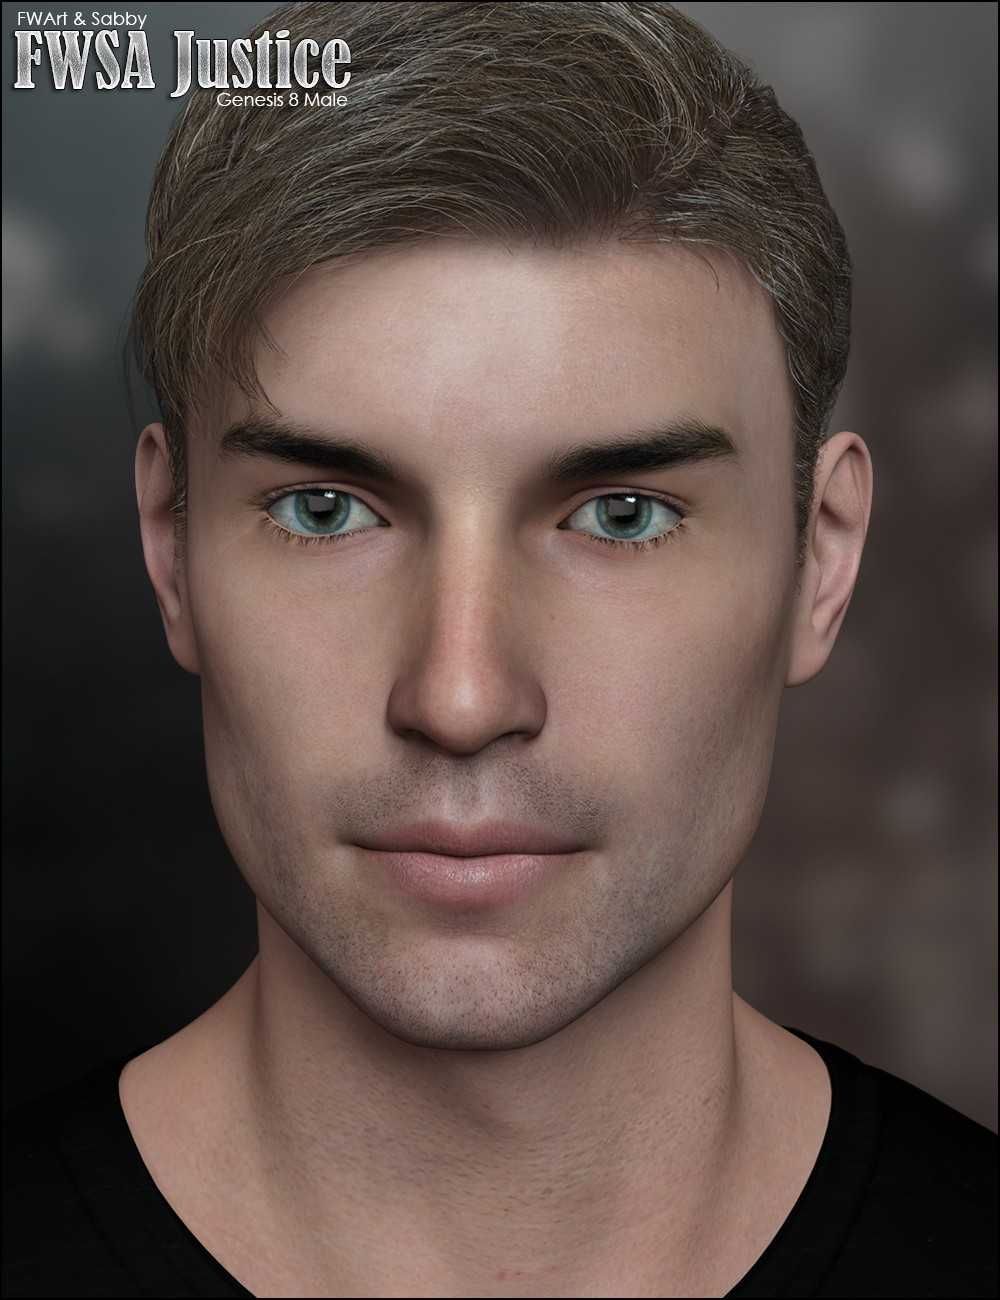 FWSA Justice for Genesis 8 Male